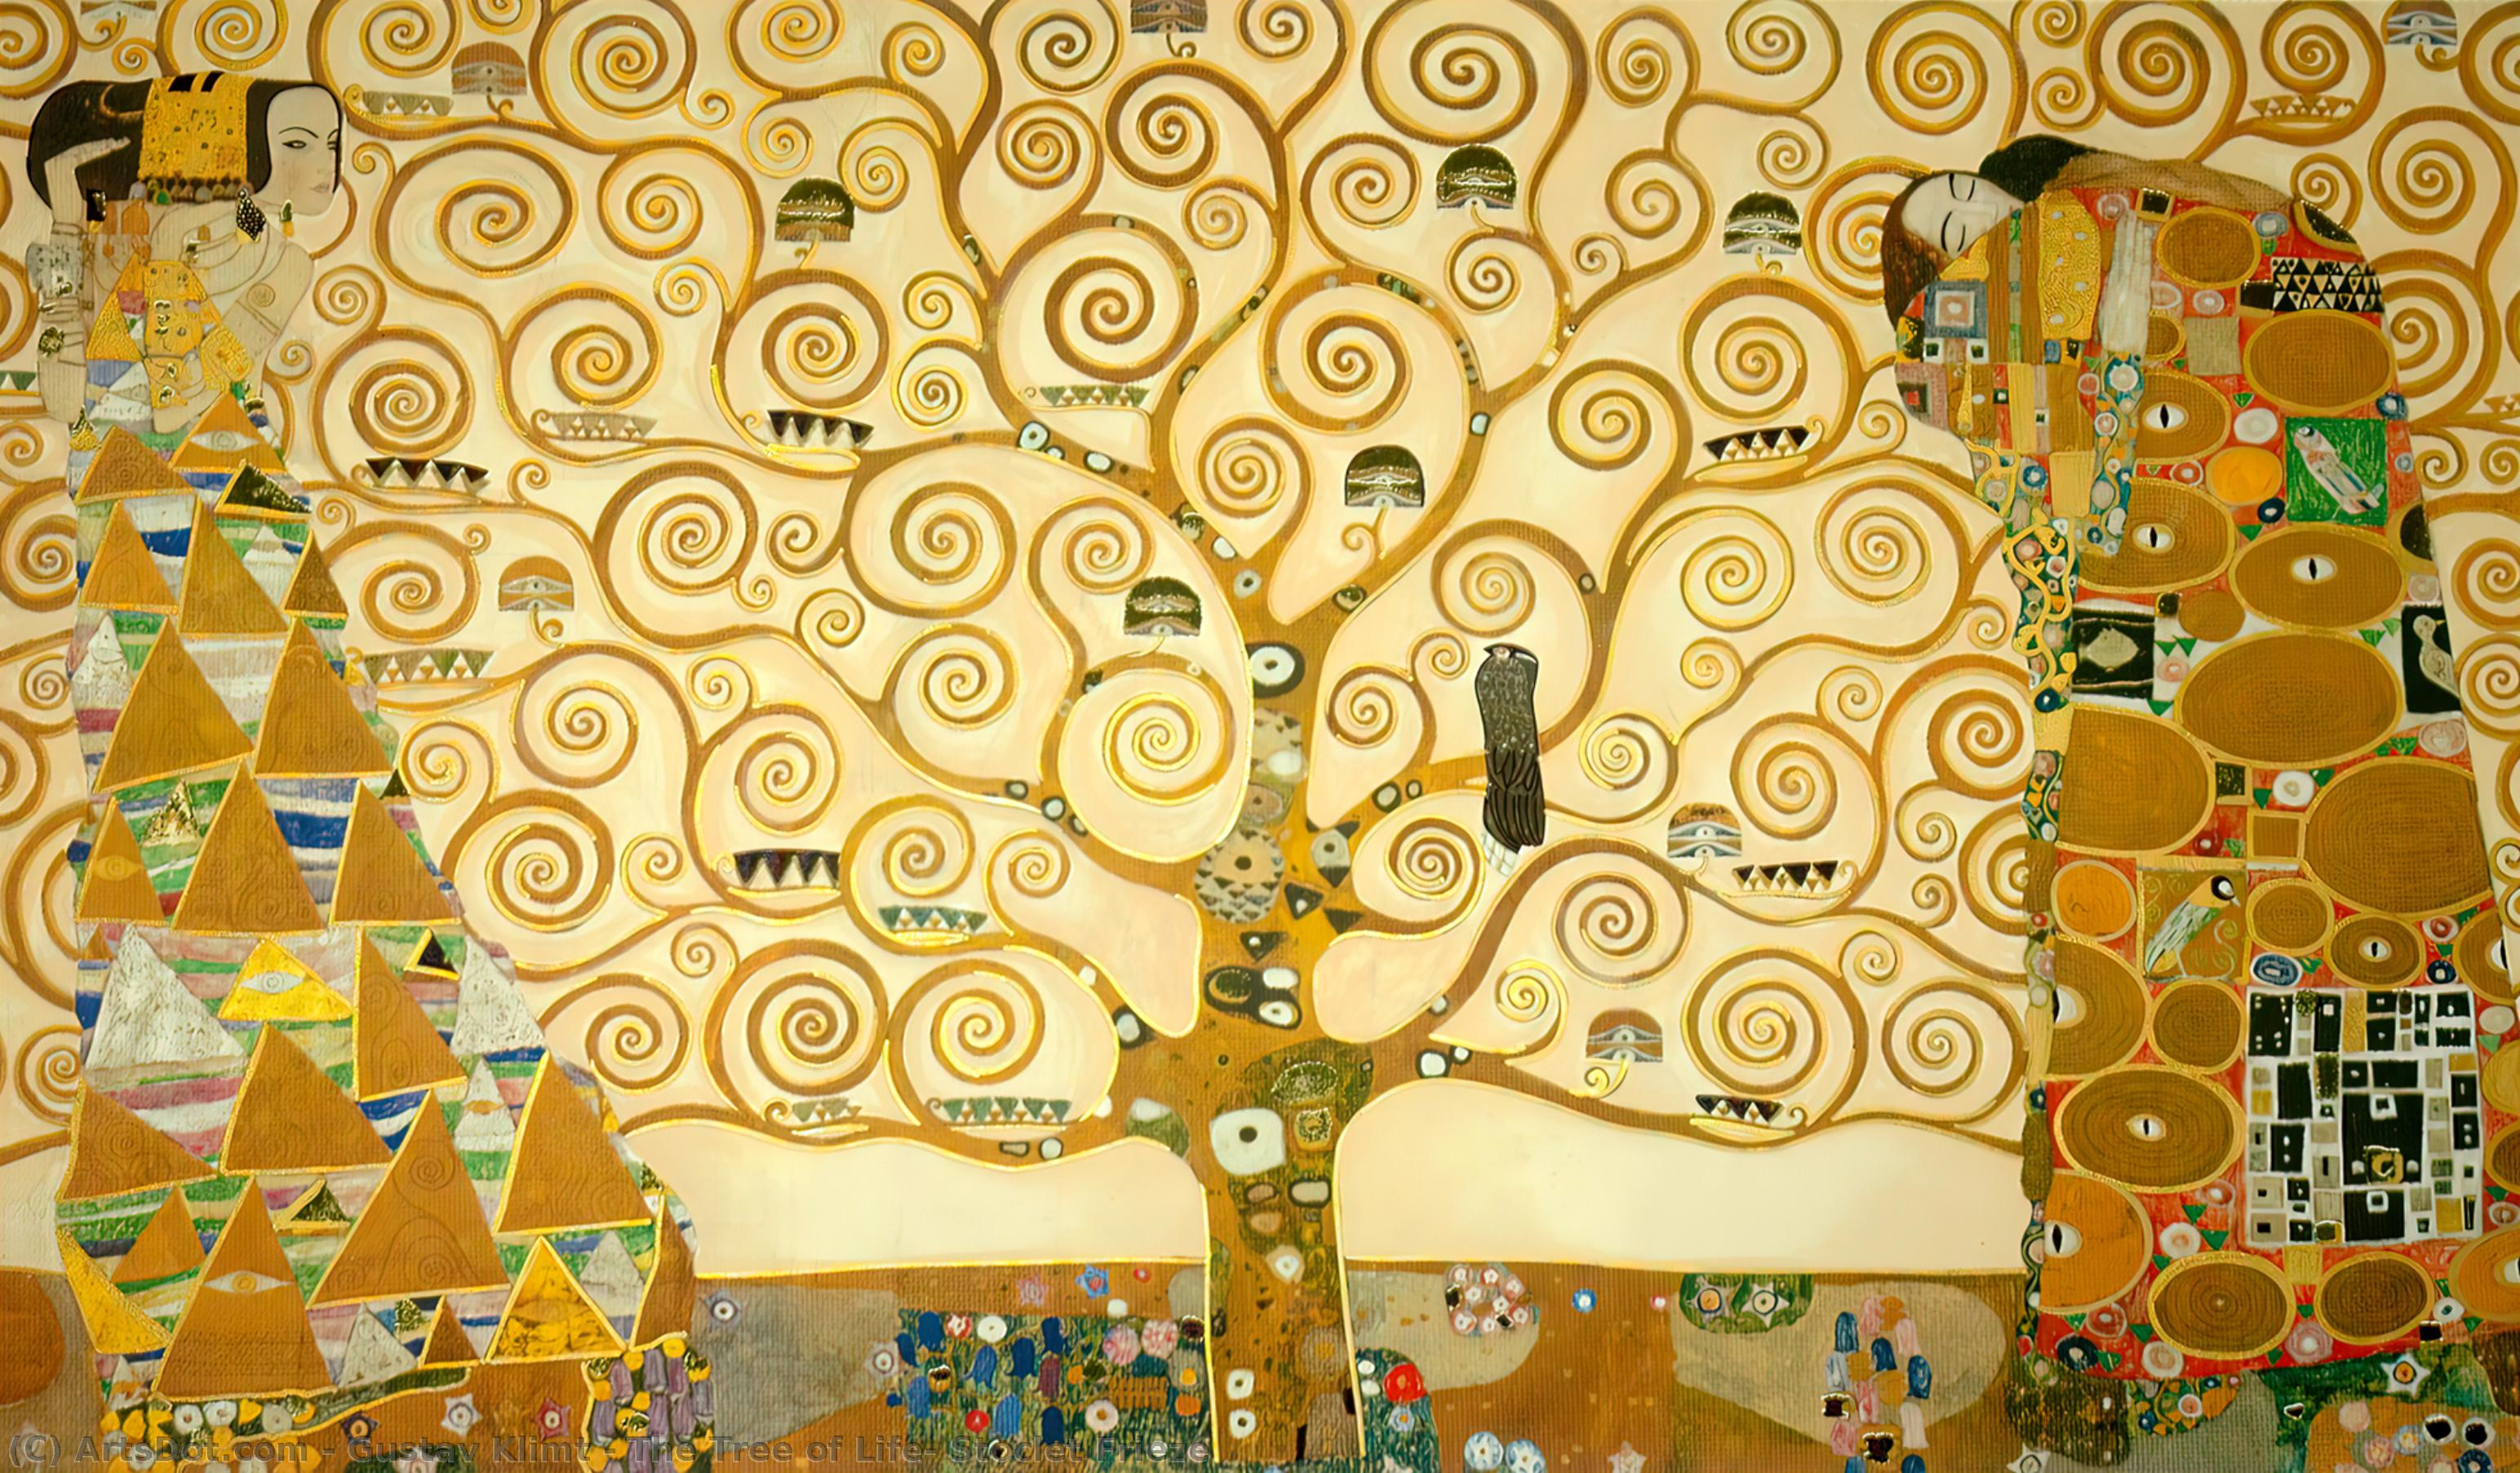 Wikioo.org - The Encyclopedia of Fine Arts - Painting, Artwork by Gustav Klimt - The Tree of Life, Stoclet Frieze